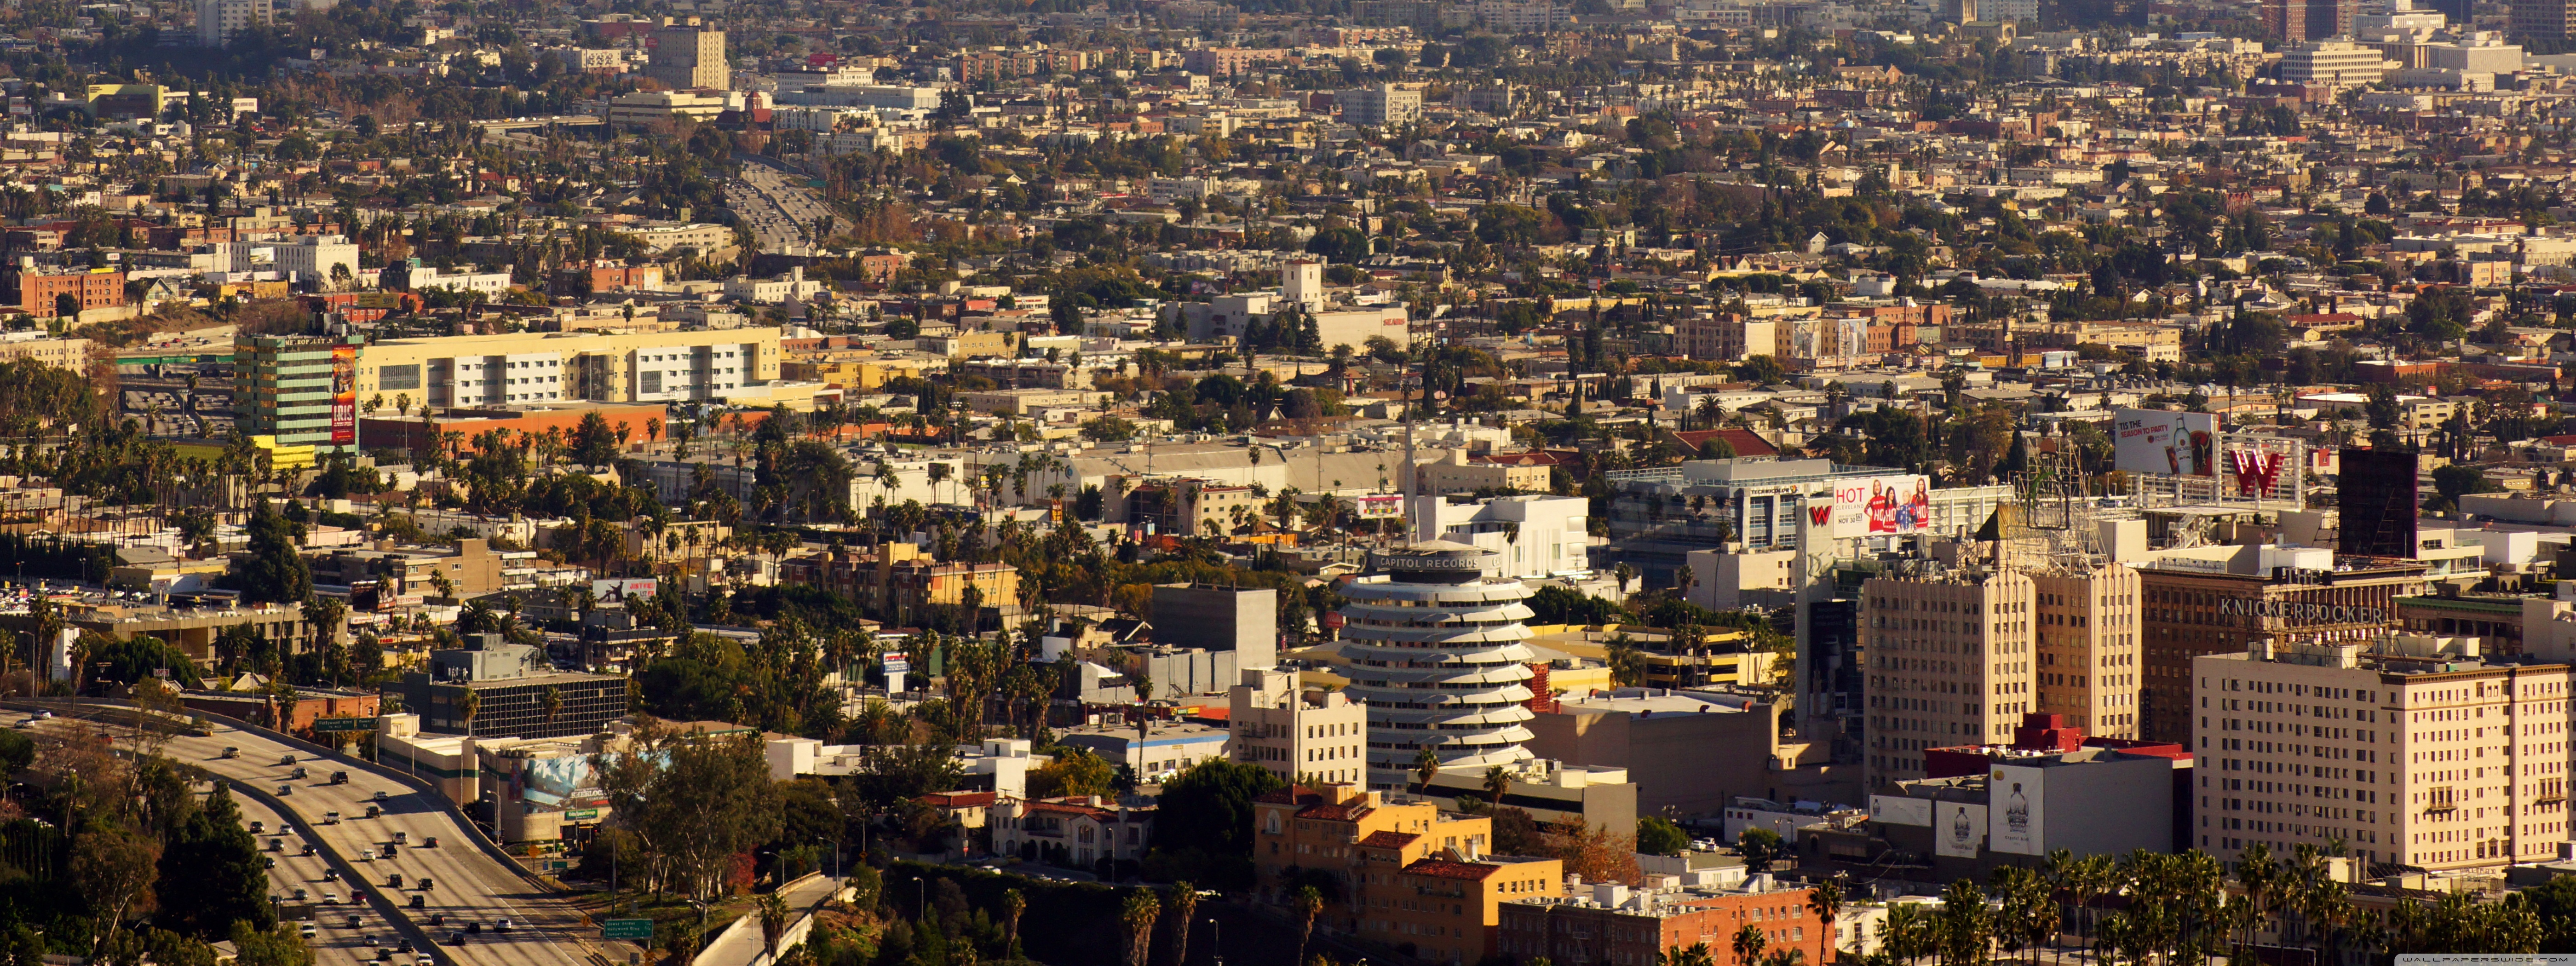 Download Free WallpaperLos Angeles Hollywood Beverly Hills